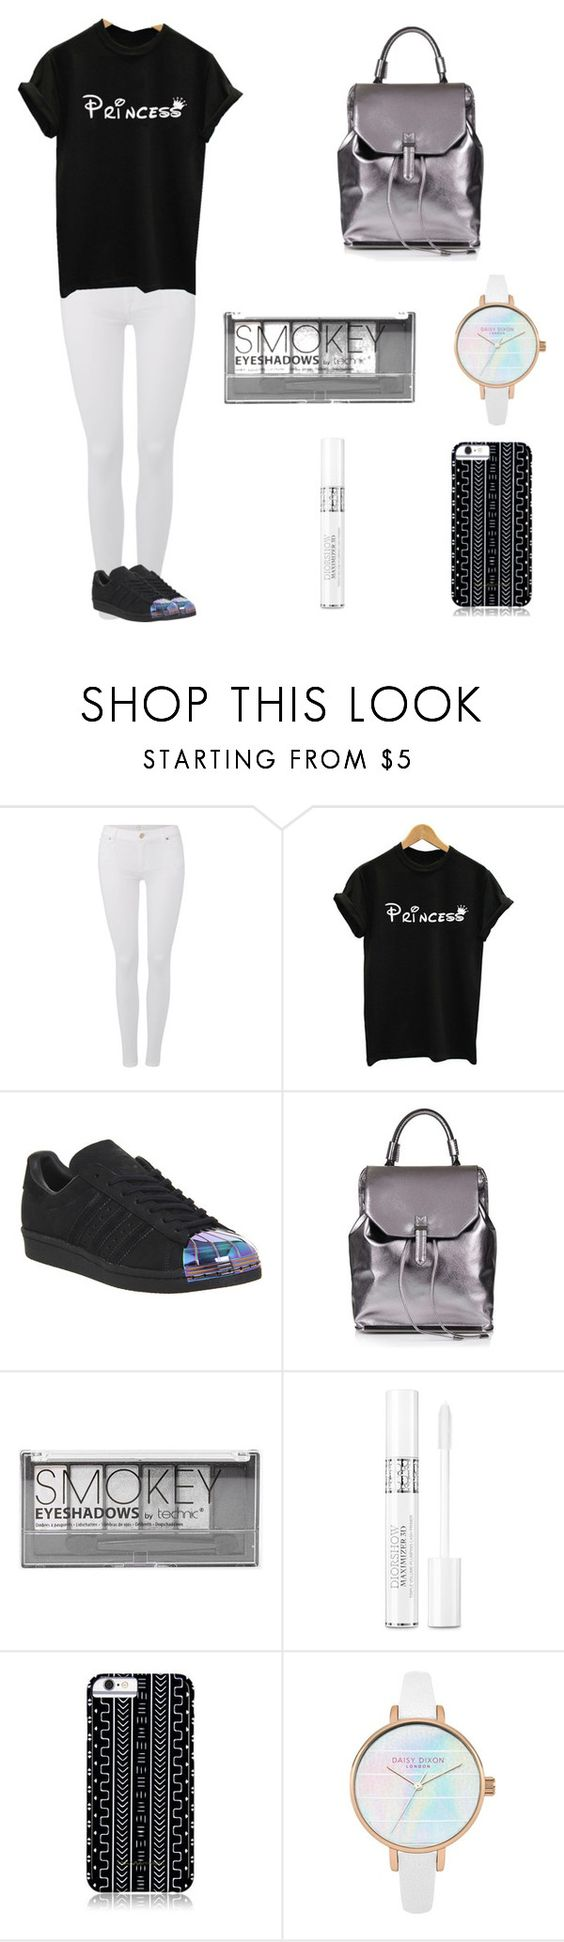 """""""Princess 👸"""" by leah3000 ❤ liked on Polyvore featuring 7 For All Mankind, adidas, Topshop, Boohoo, Christian Dior and Savannah Hayes"""